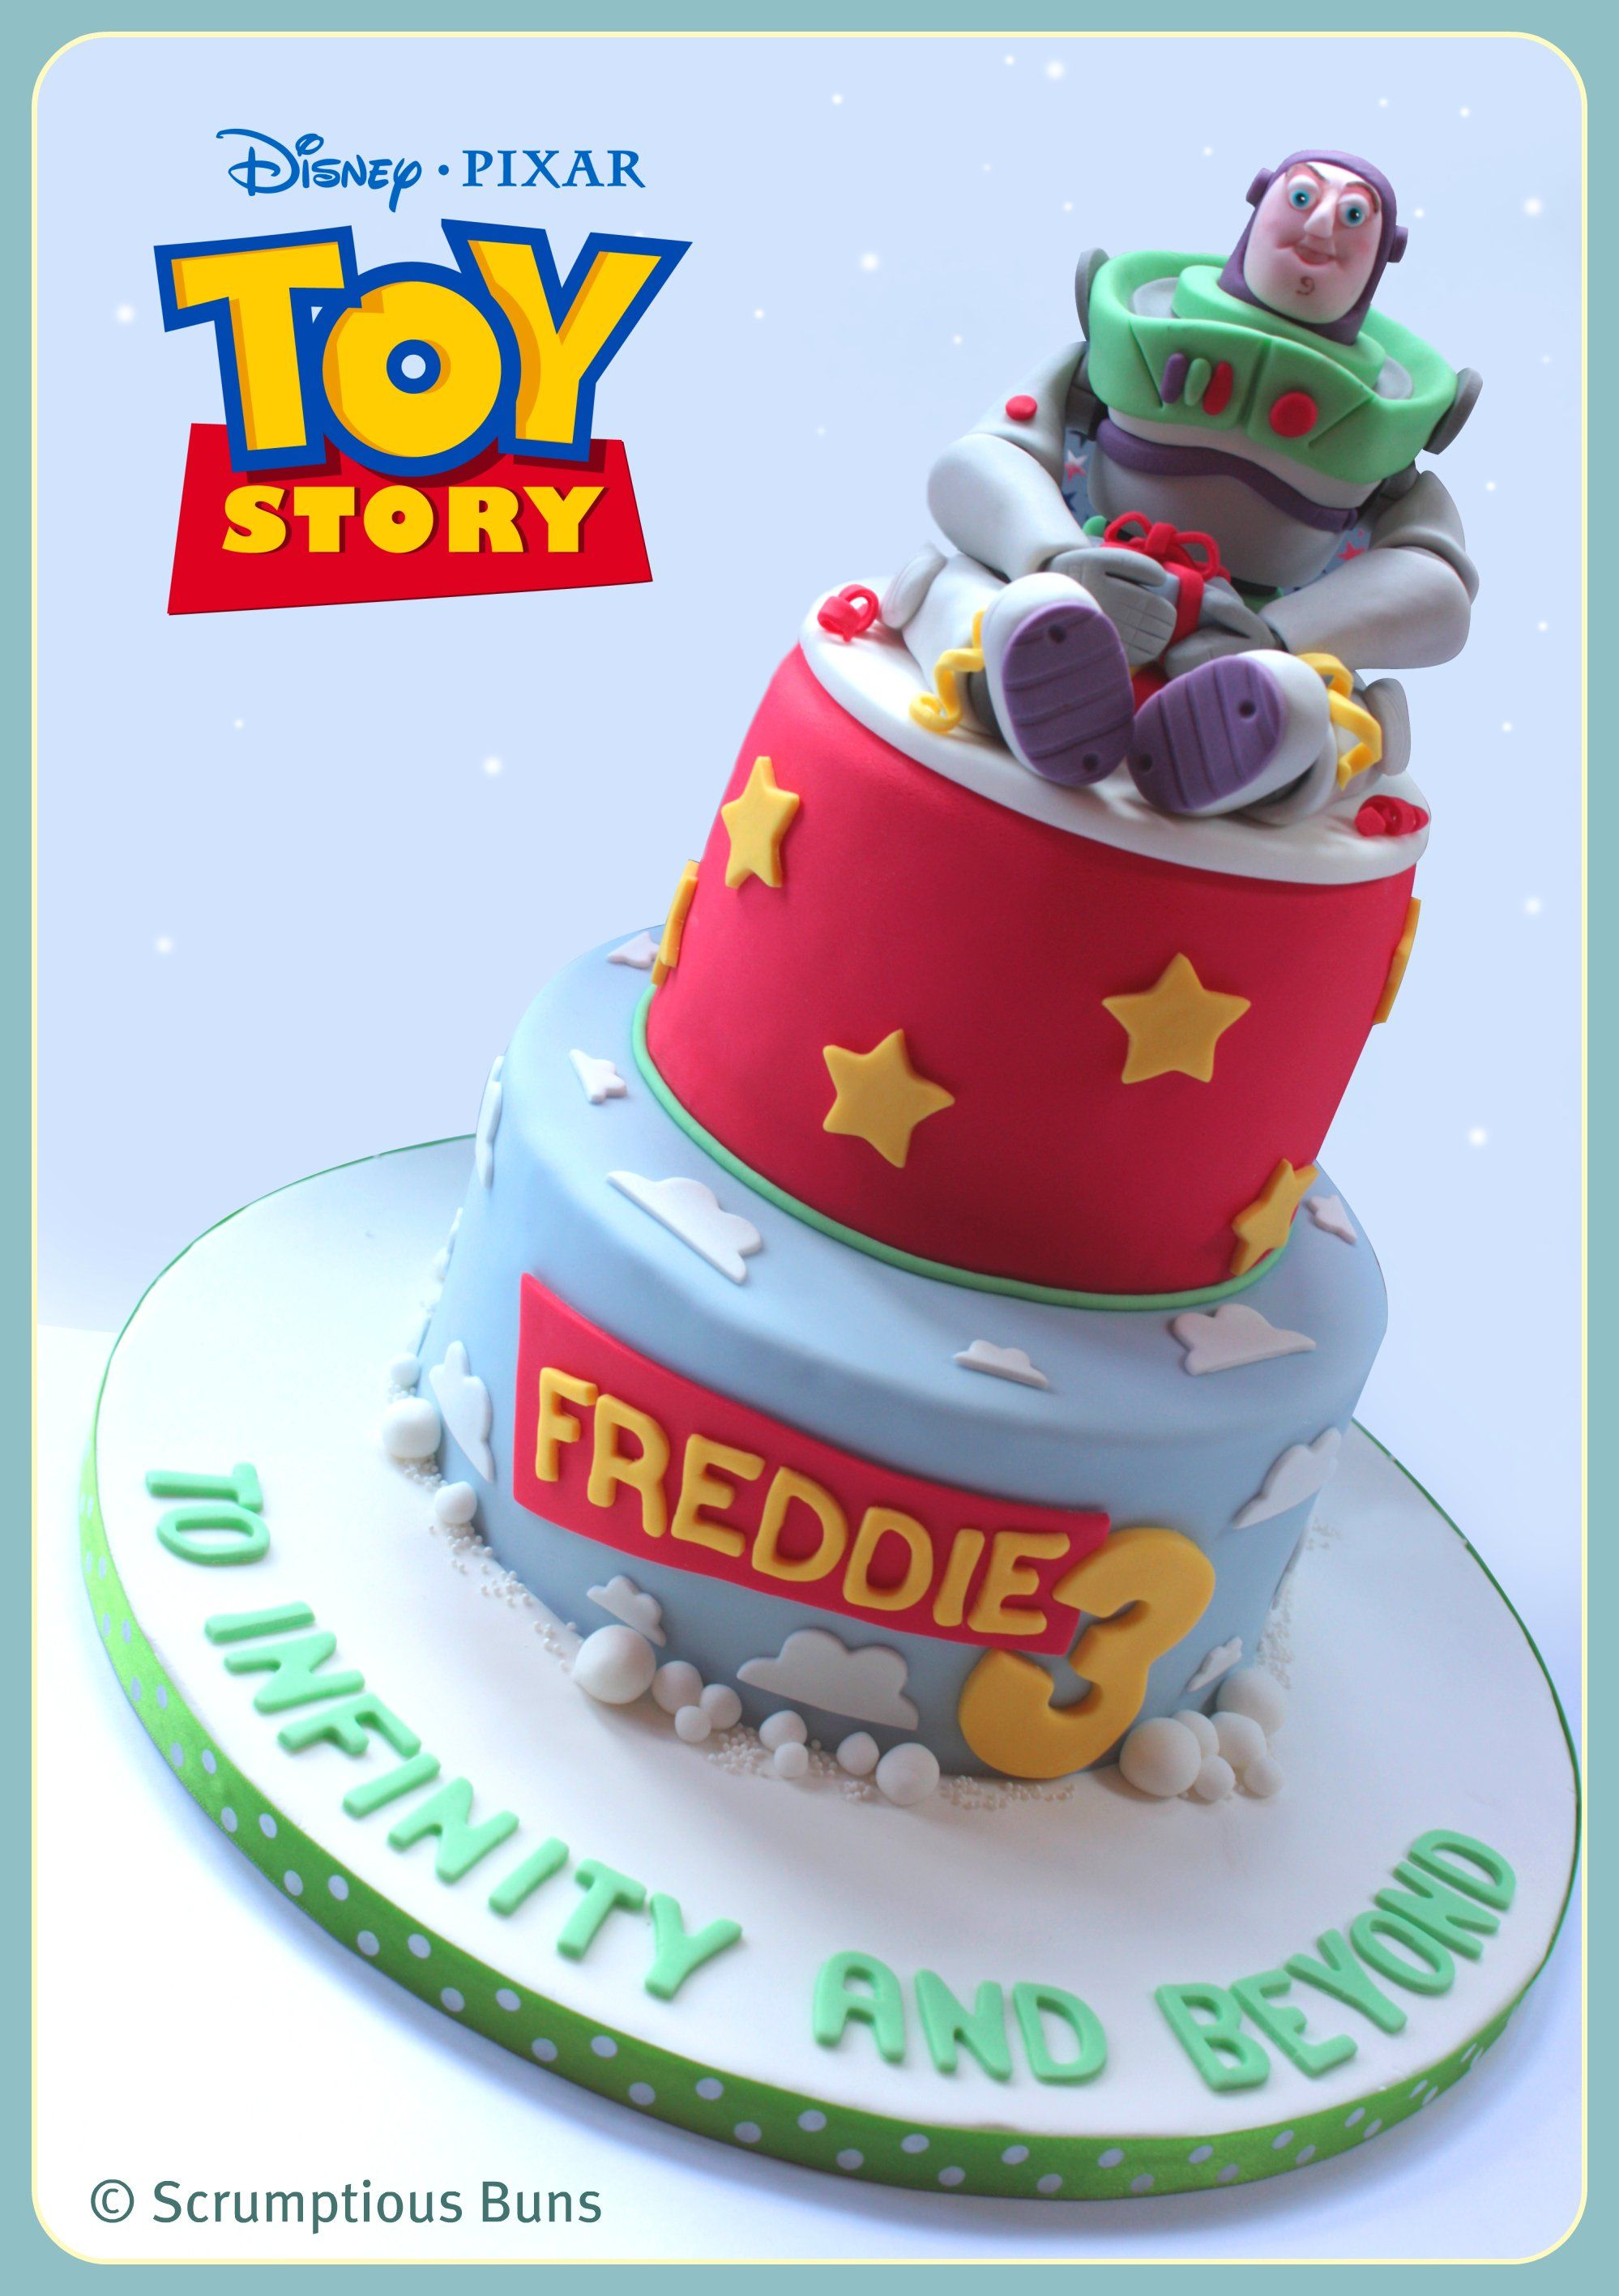 Buzz Lightyear - Chocolate Mud 8 bottom tier, Madagascan vanilla sponge 6 top layer with sugarpaste Buzz Lightyear sitting on the top!